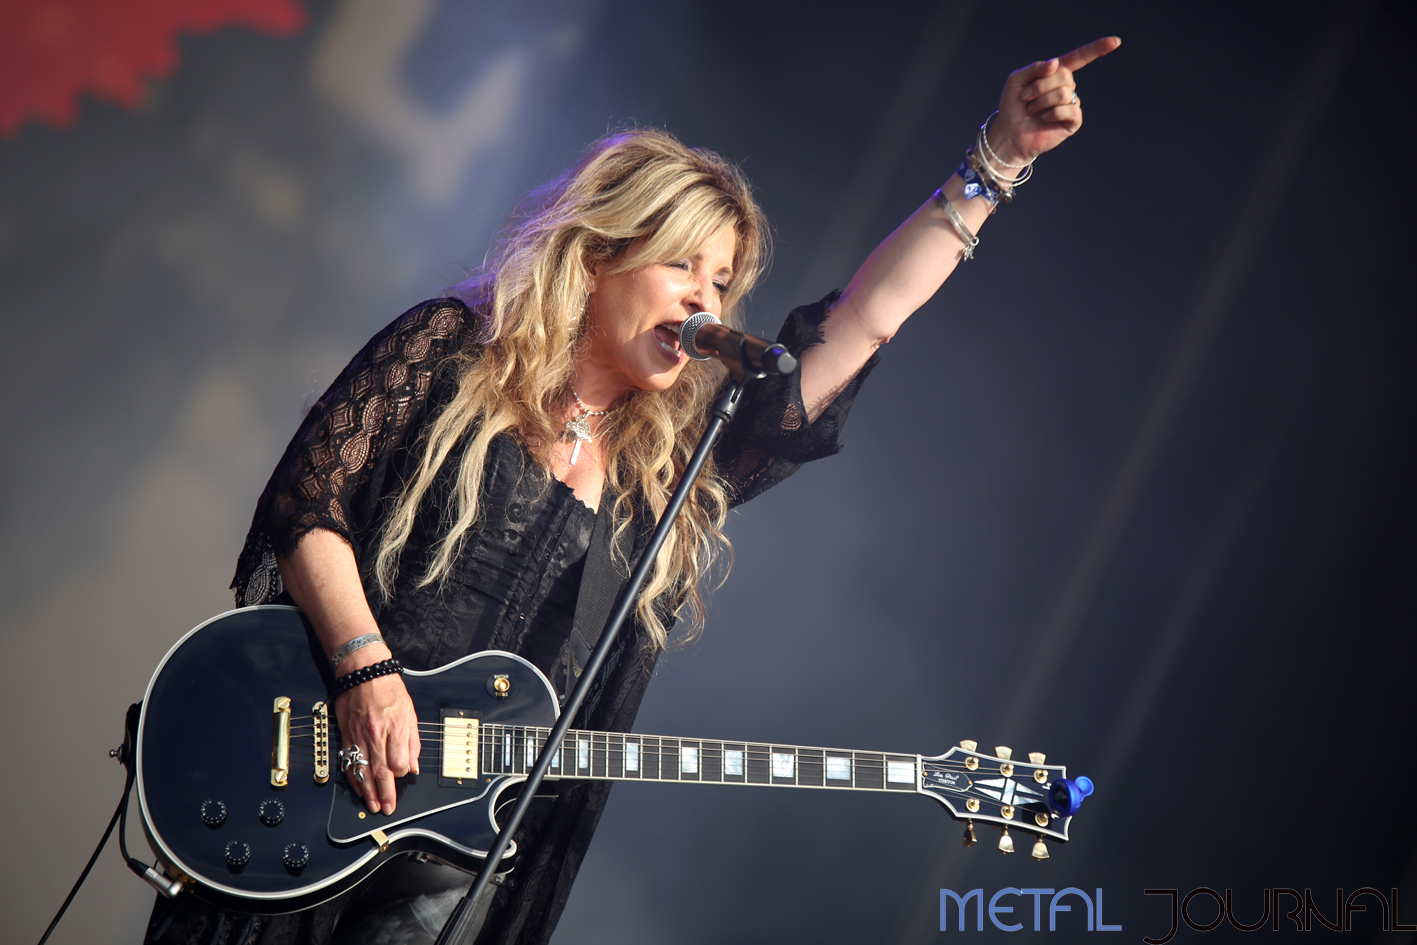 vixen rock fest 18 - metal journal pic 6